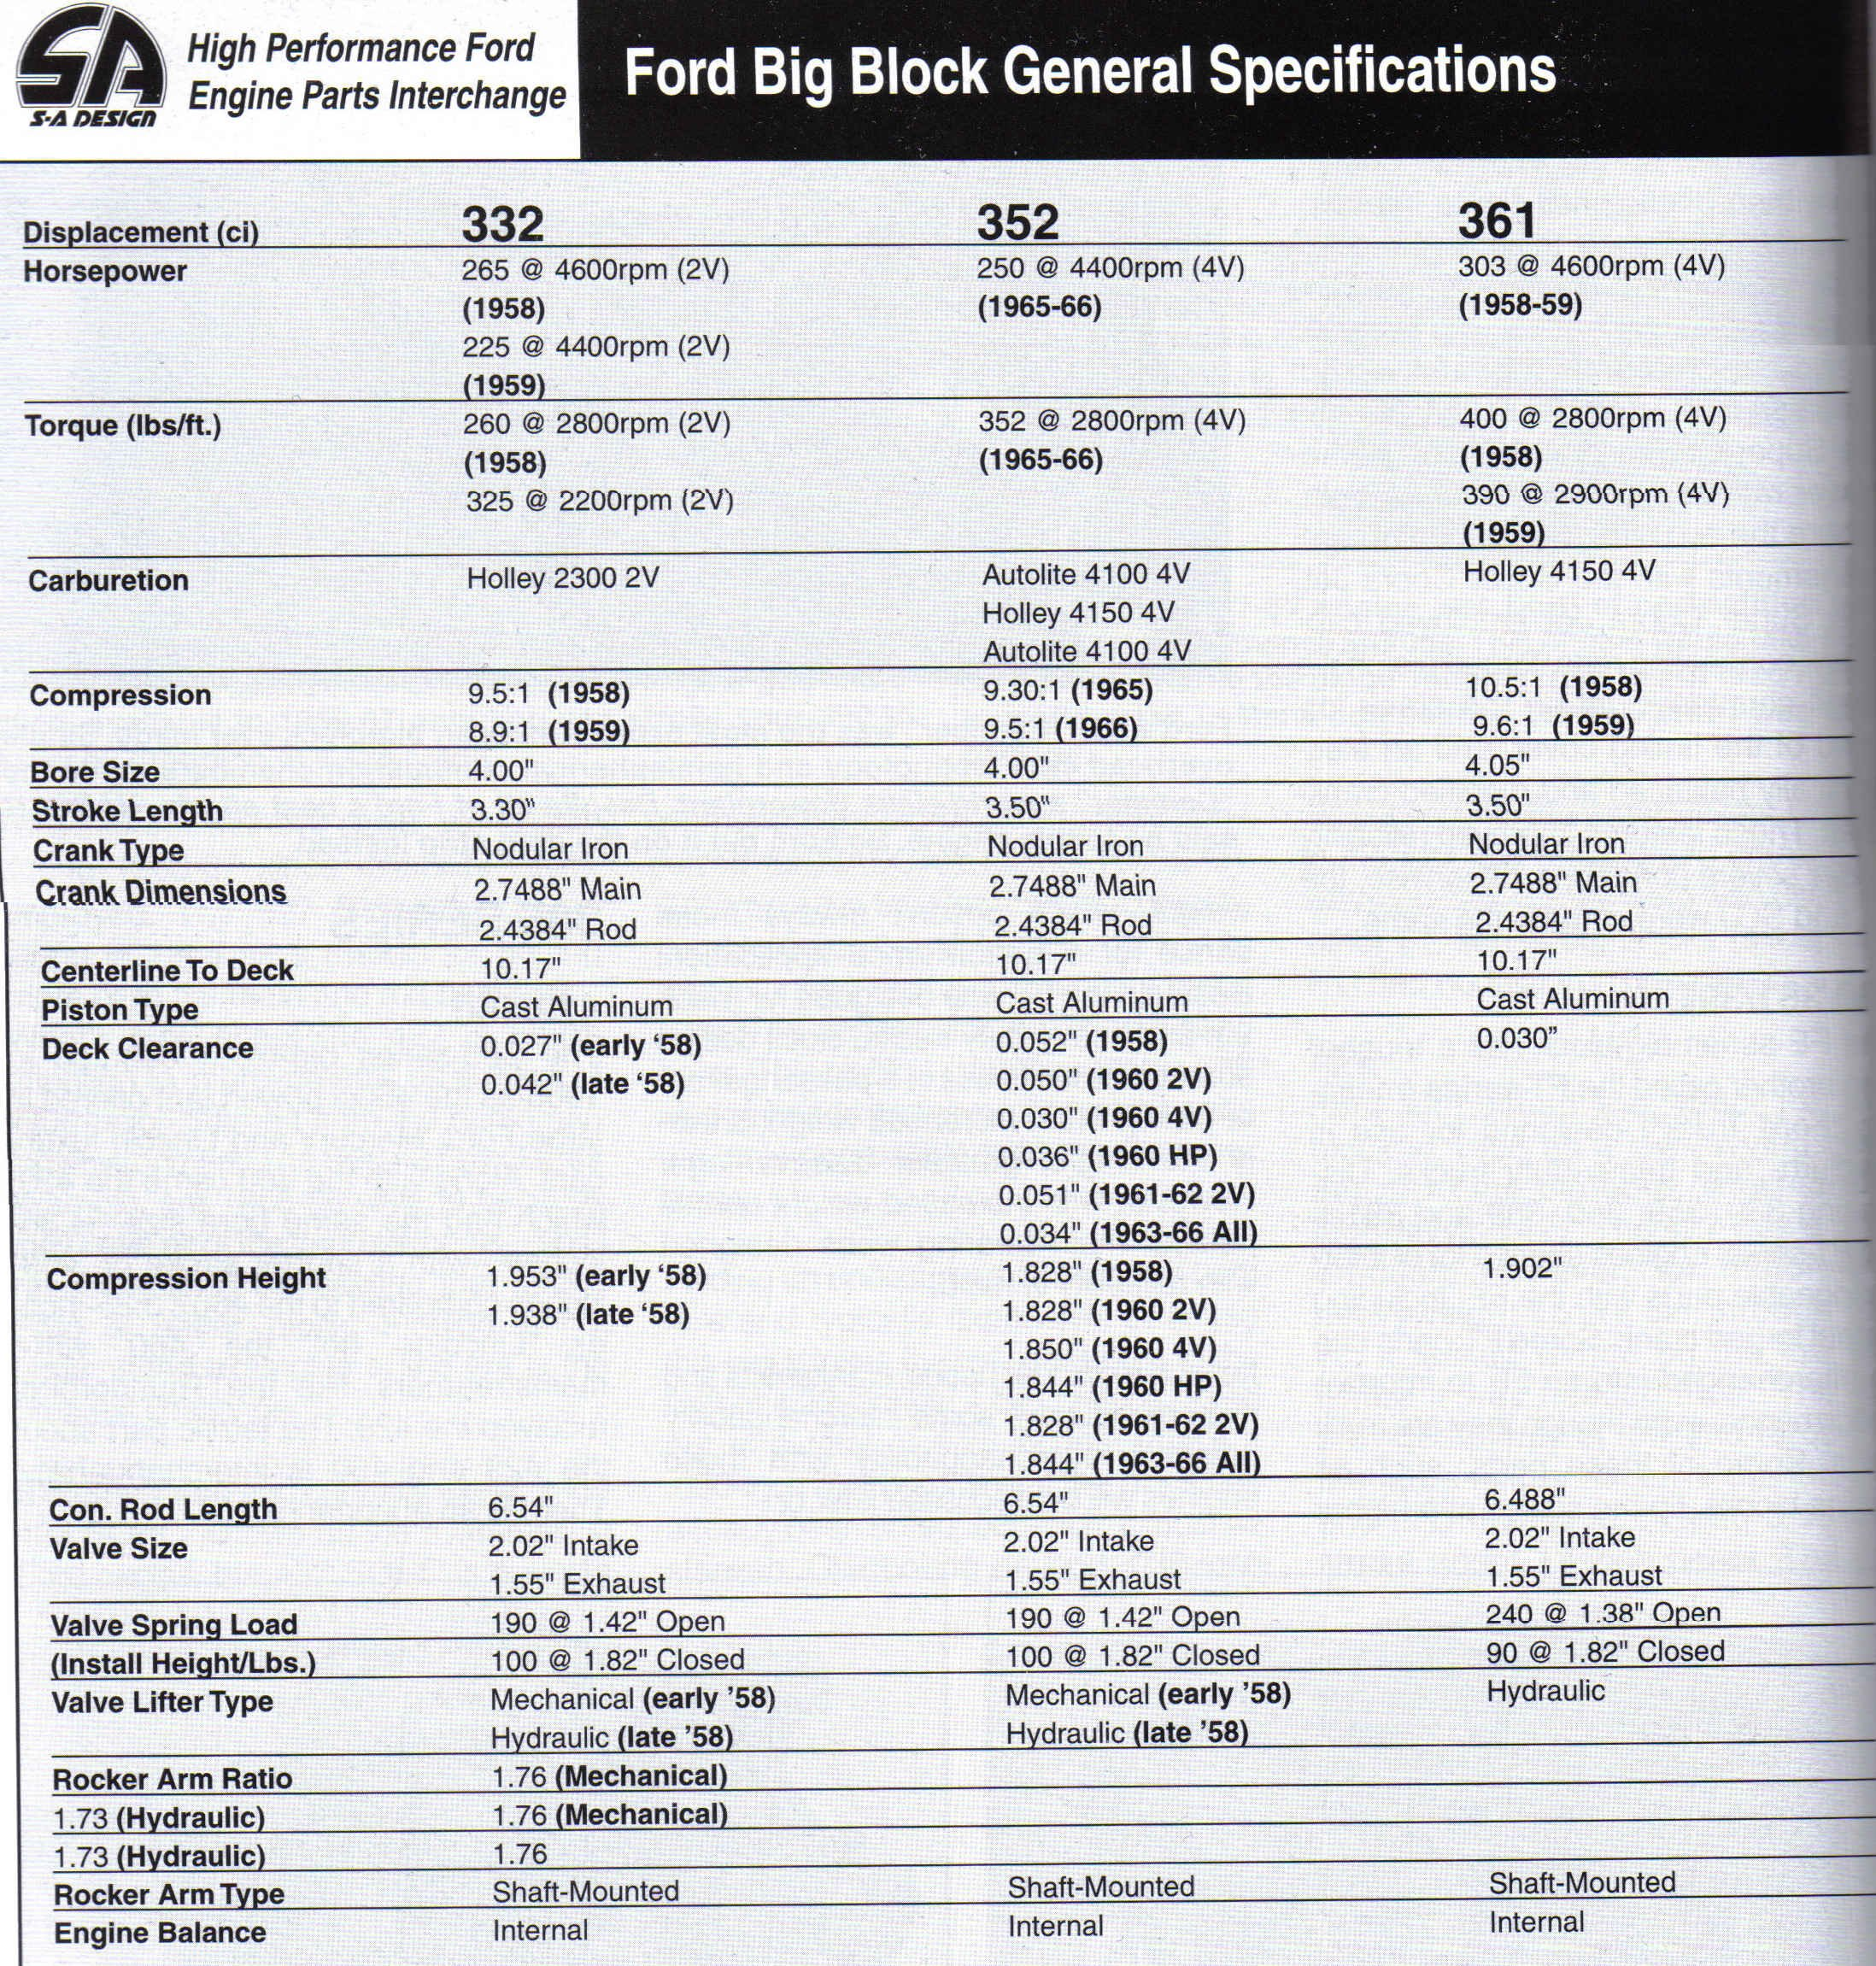 Ford 460 engine identification numbers